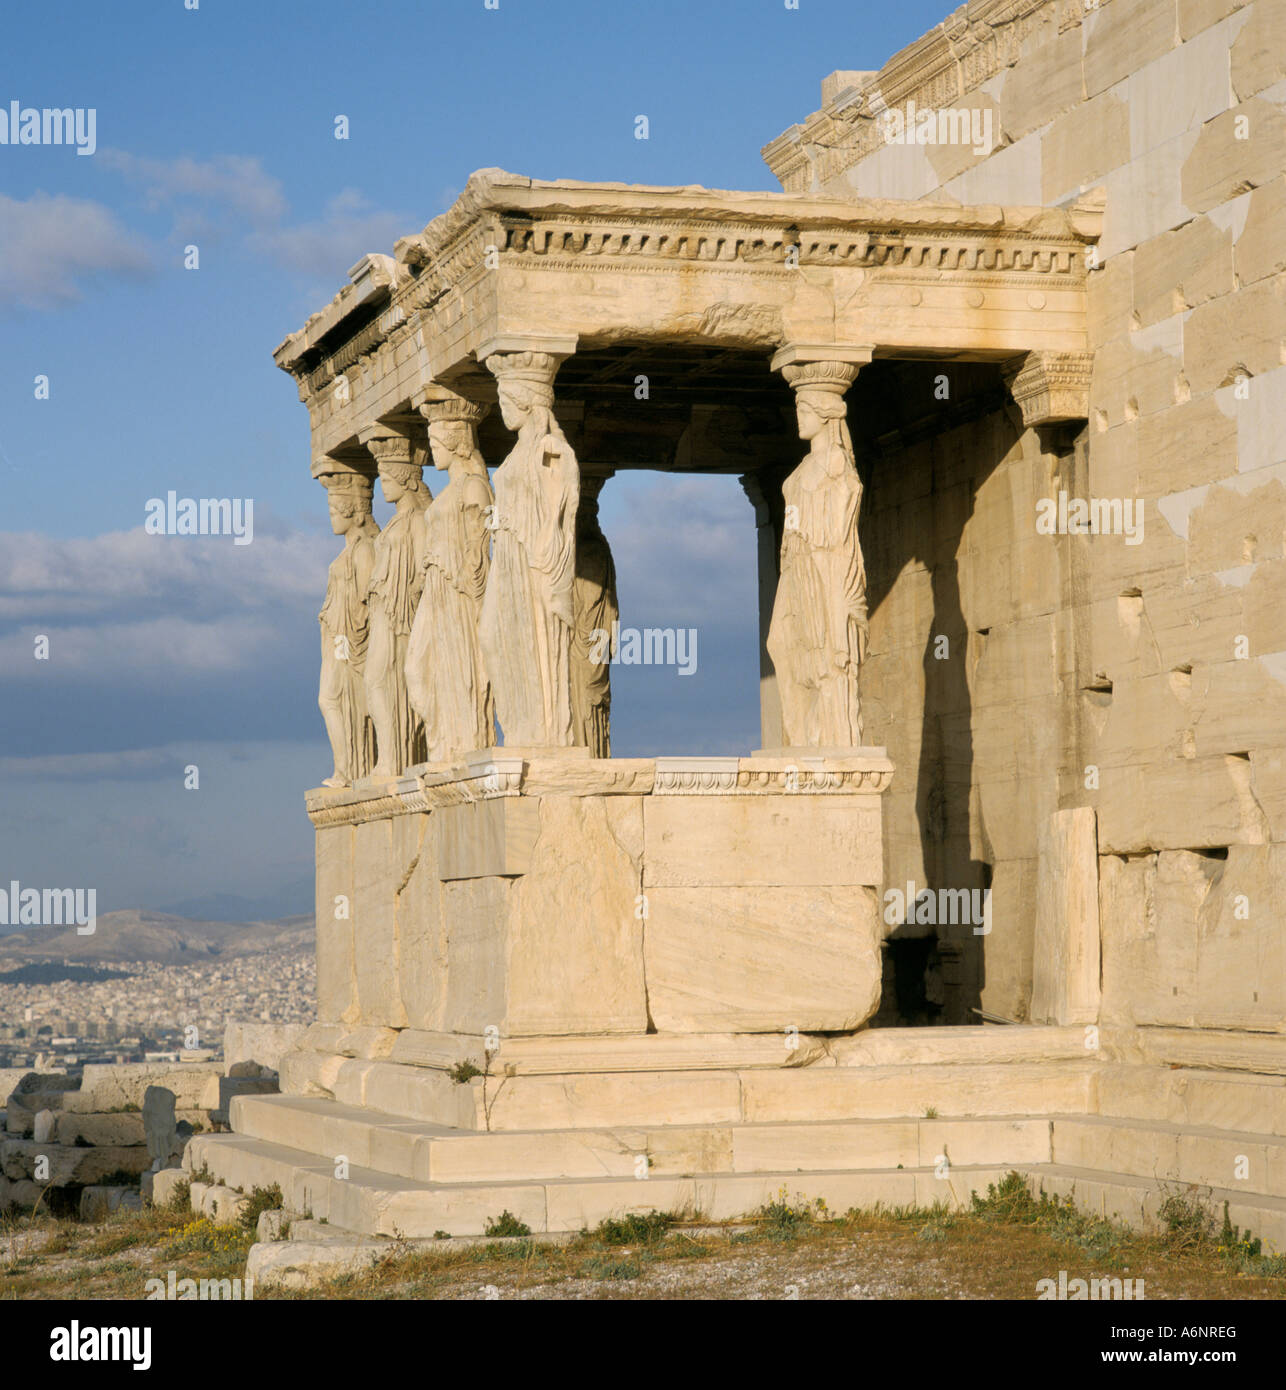 Statues of the caryatid maidens on the Erechtheion dating from 406 BC Acropolis UNESCO World Heritage Site Athens - Stock Image